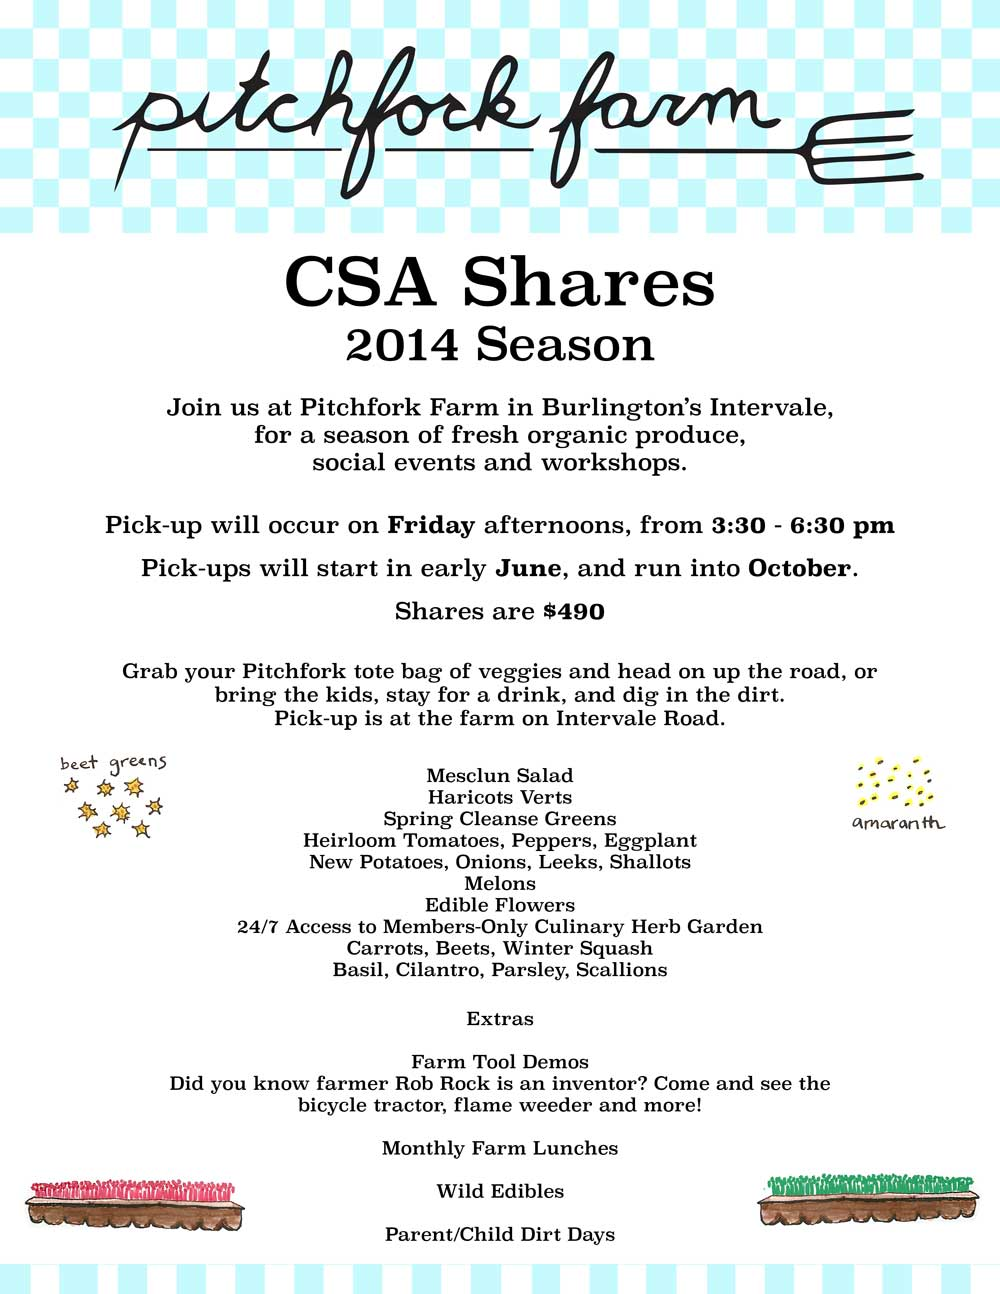 2014 CSA Share Poster